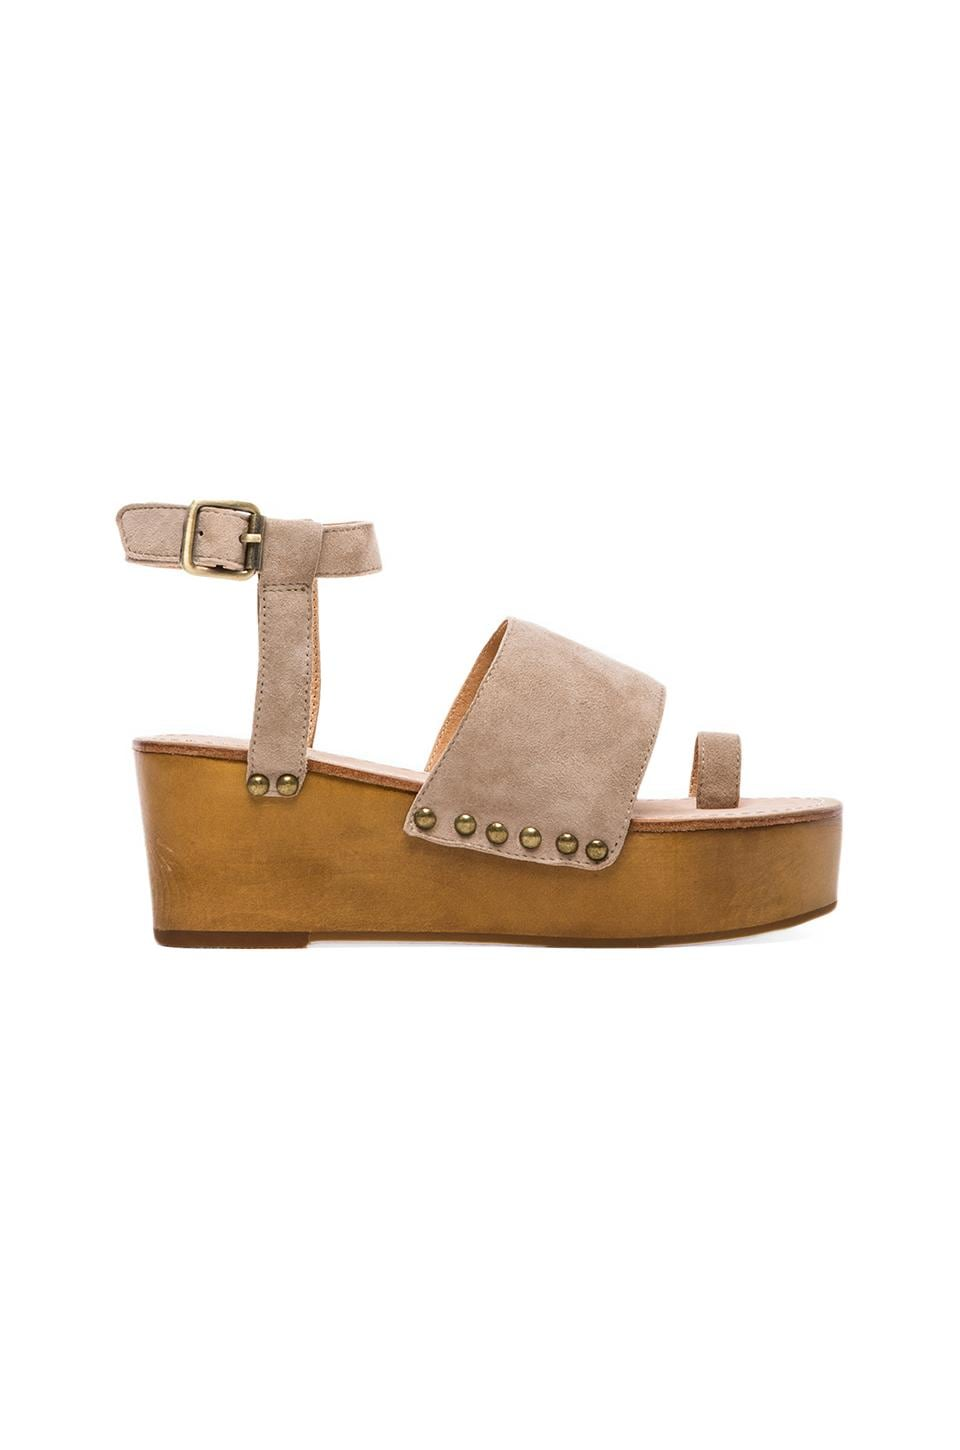 MADISON HARDING Holly Toe Strap Platform in Nude Kid Suede